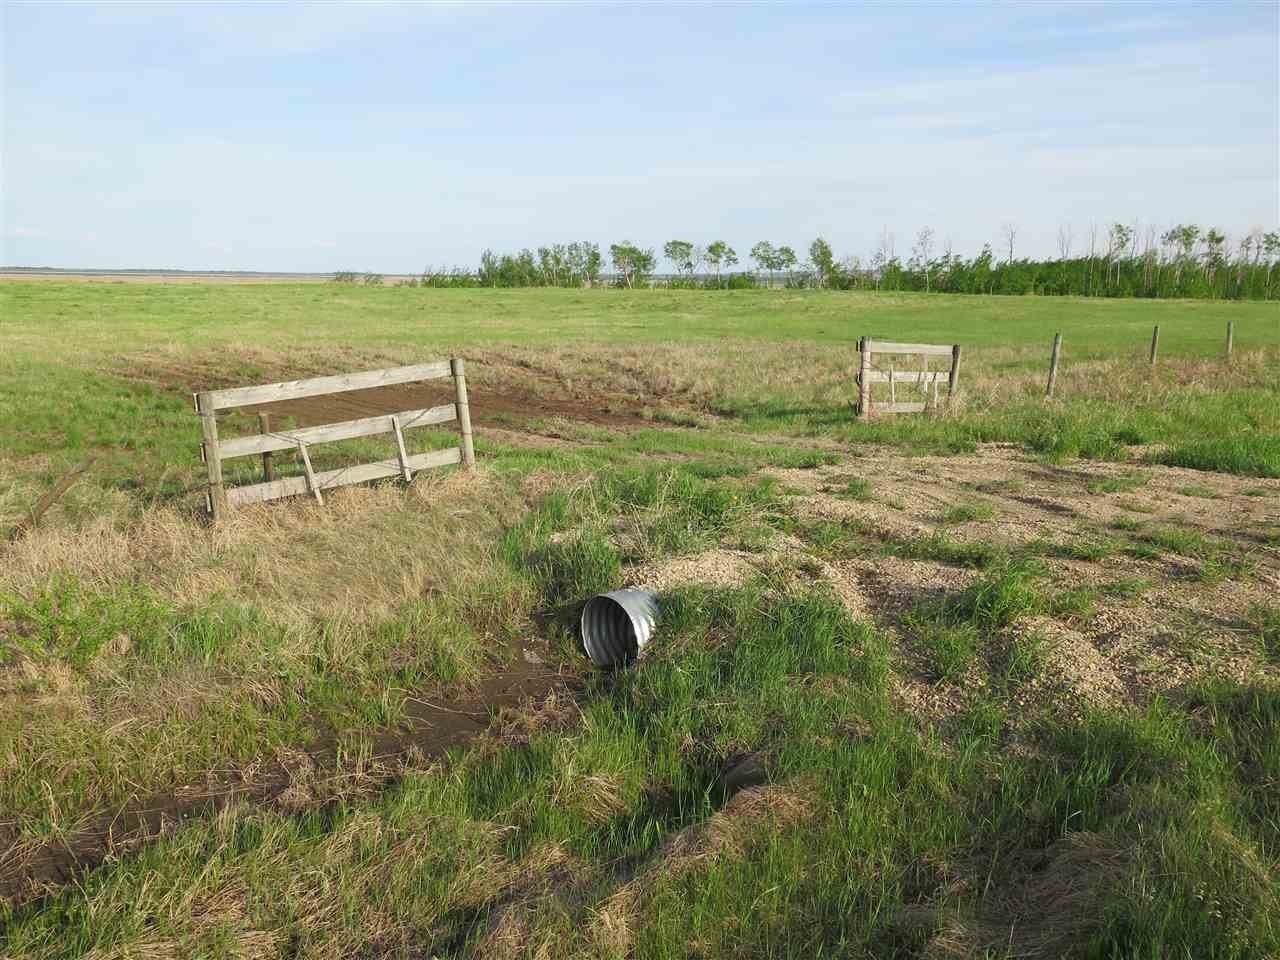 Main Photo: 45063B TWP RD 734 (KLESKUN WEST): Rural Grande Prairie County Rural Land/Vacant Lot for sale : MLS®# E4190065